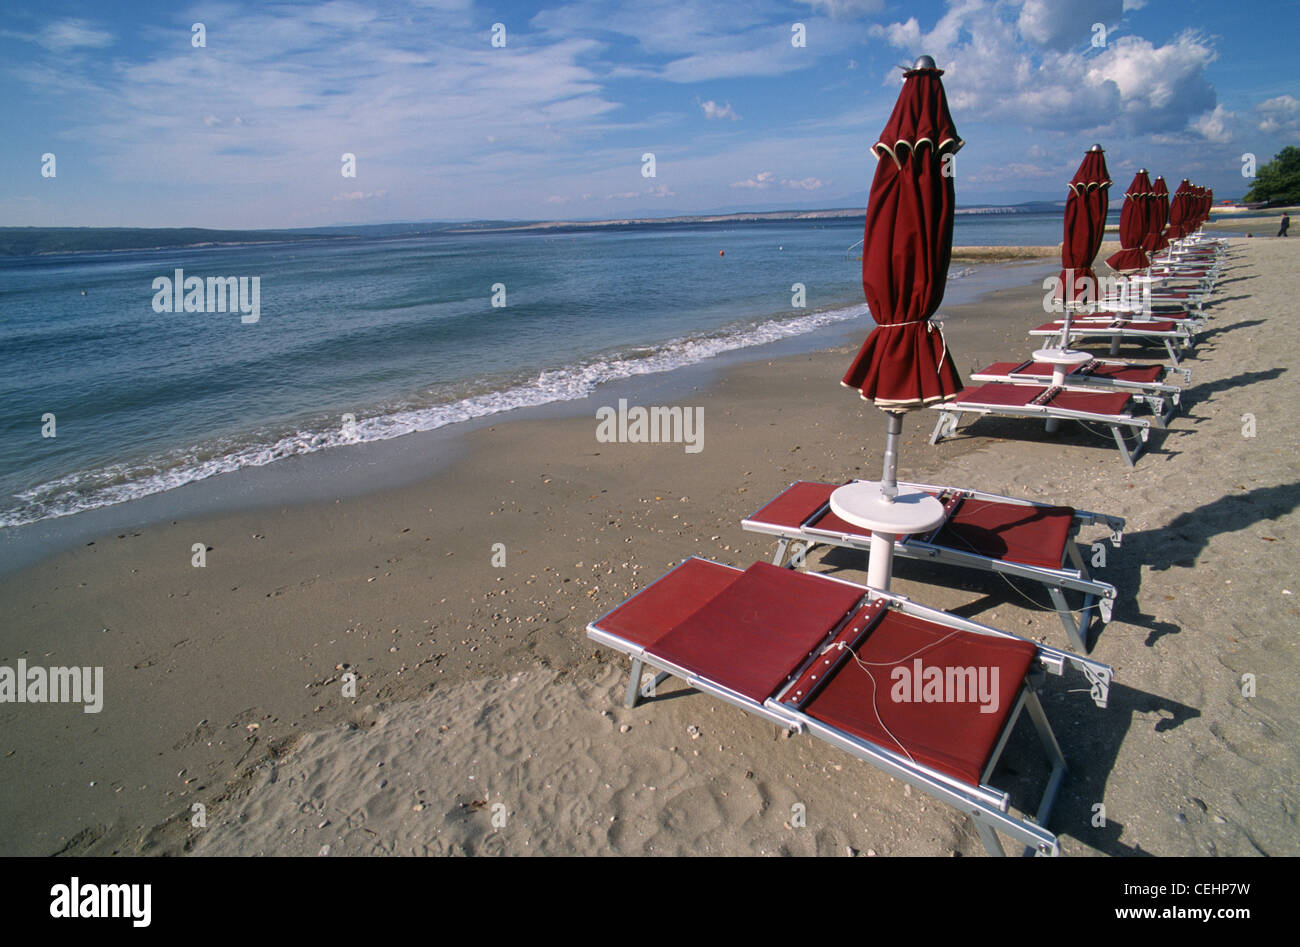 Lounge couches with sunshades at the public beach of Crikvenica during autumn, Kvarner gulf, Croatia - Stock Image